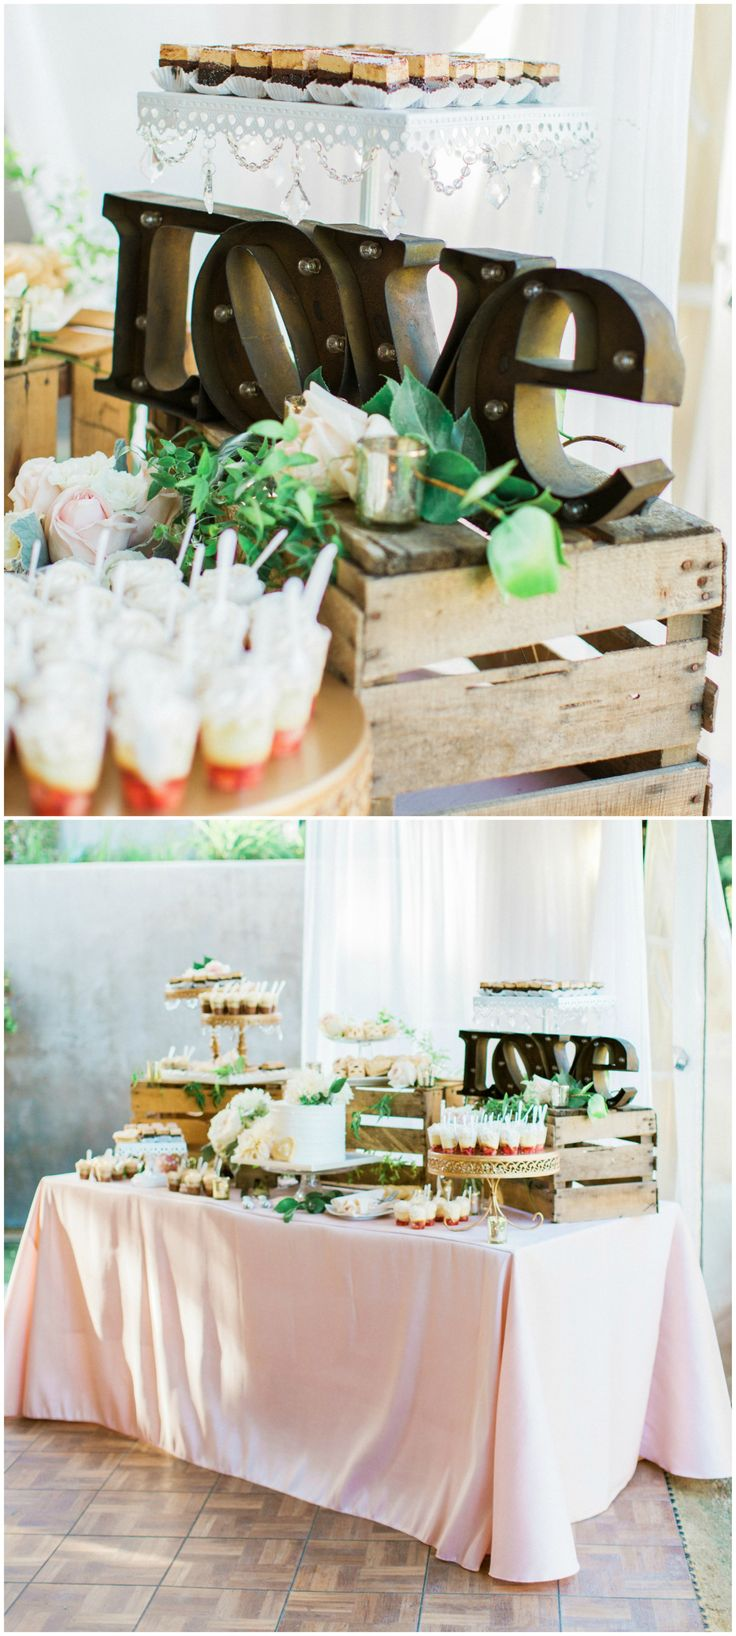 """Wedding reception dessert table, """"LOVE"""" sign, pastel pink tablecloths, bite-size treats // Pauline Conway Photography"""